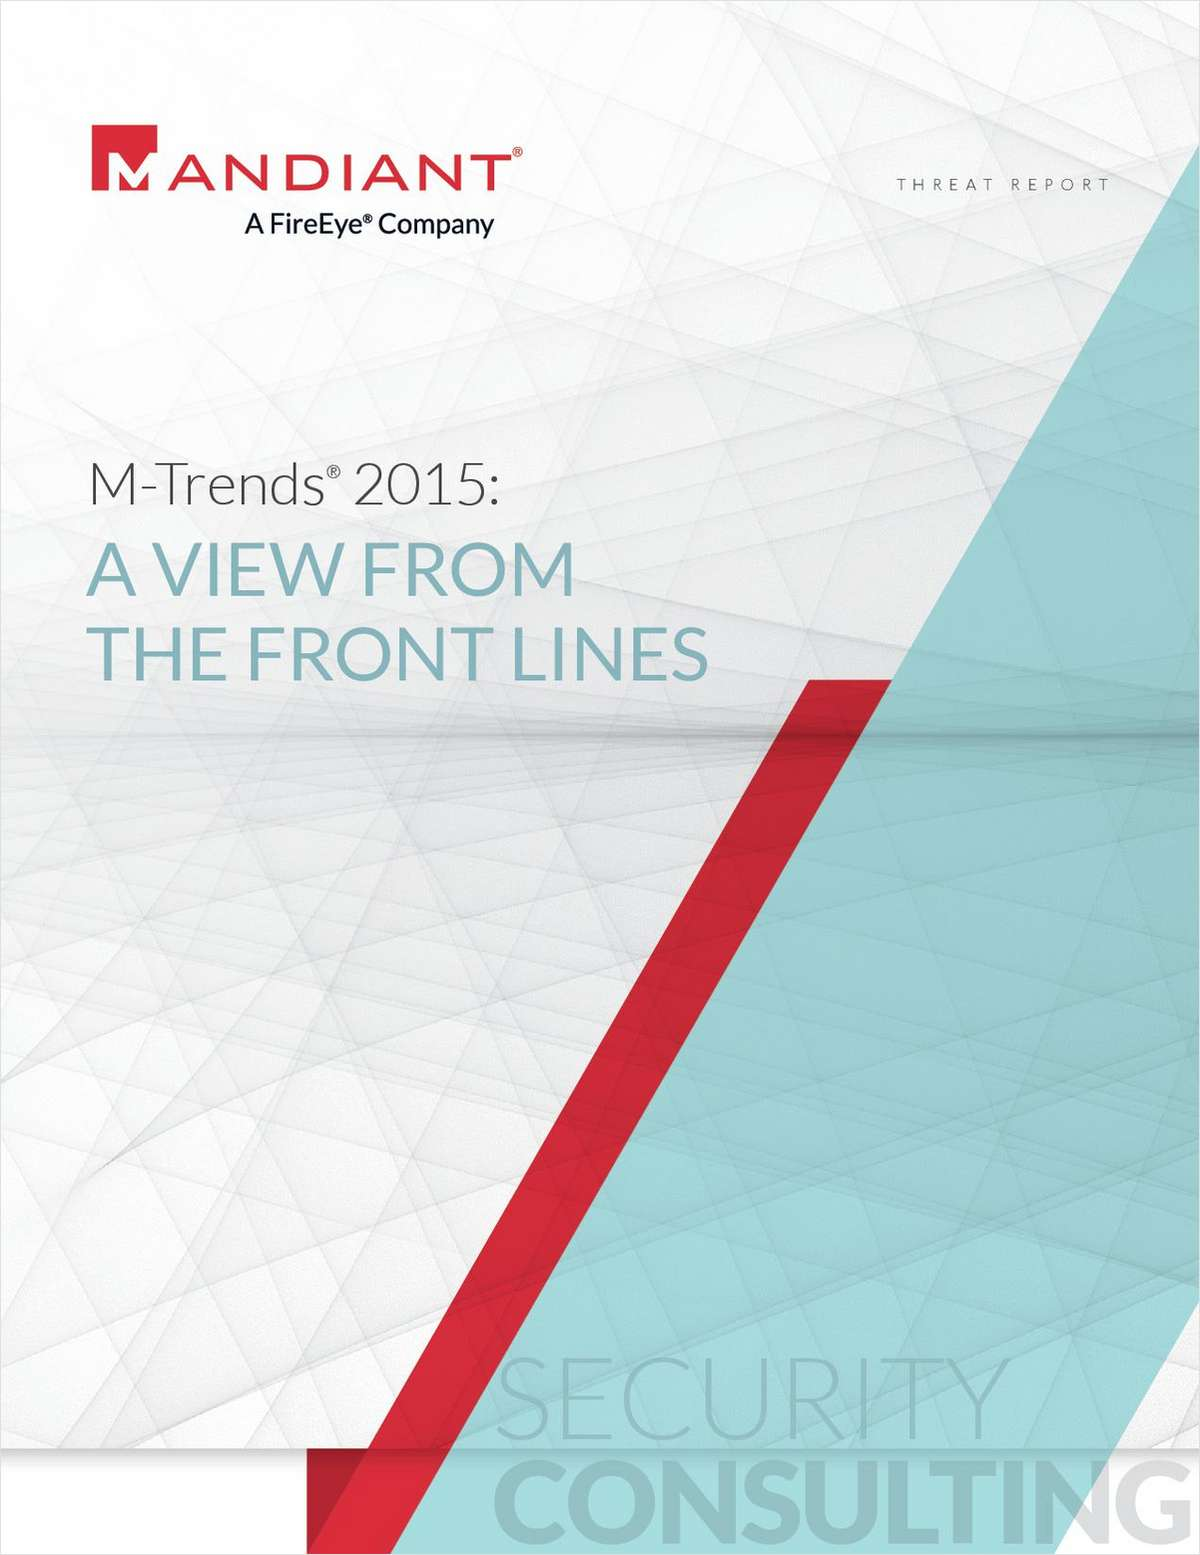 Cyber Security Threat Report: A View From the Front Lines